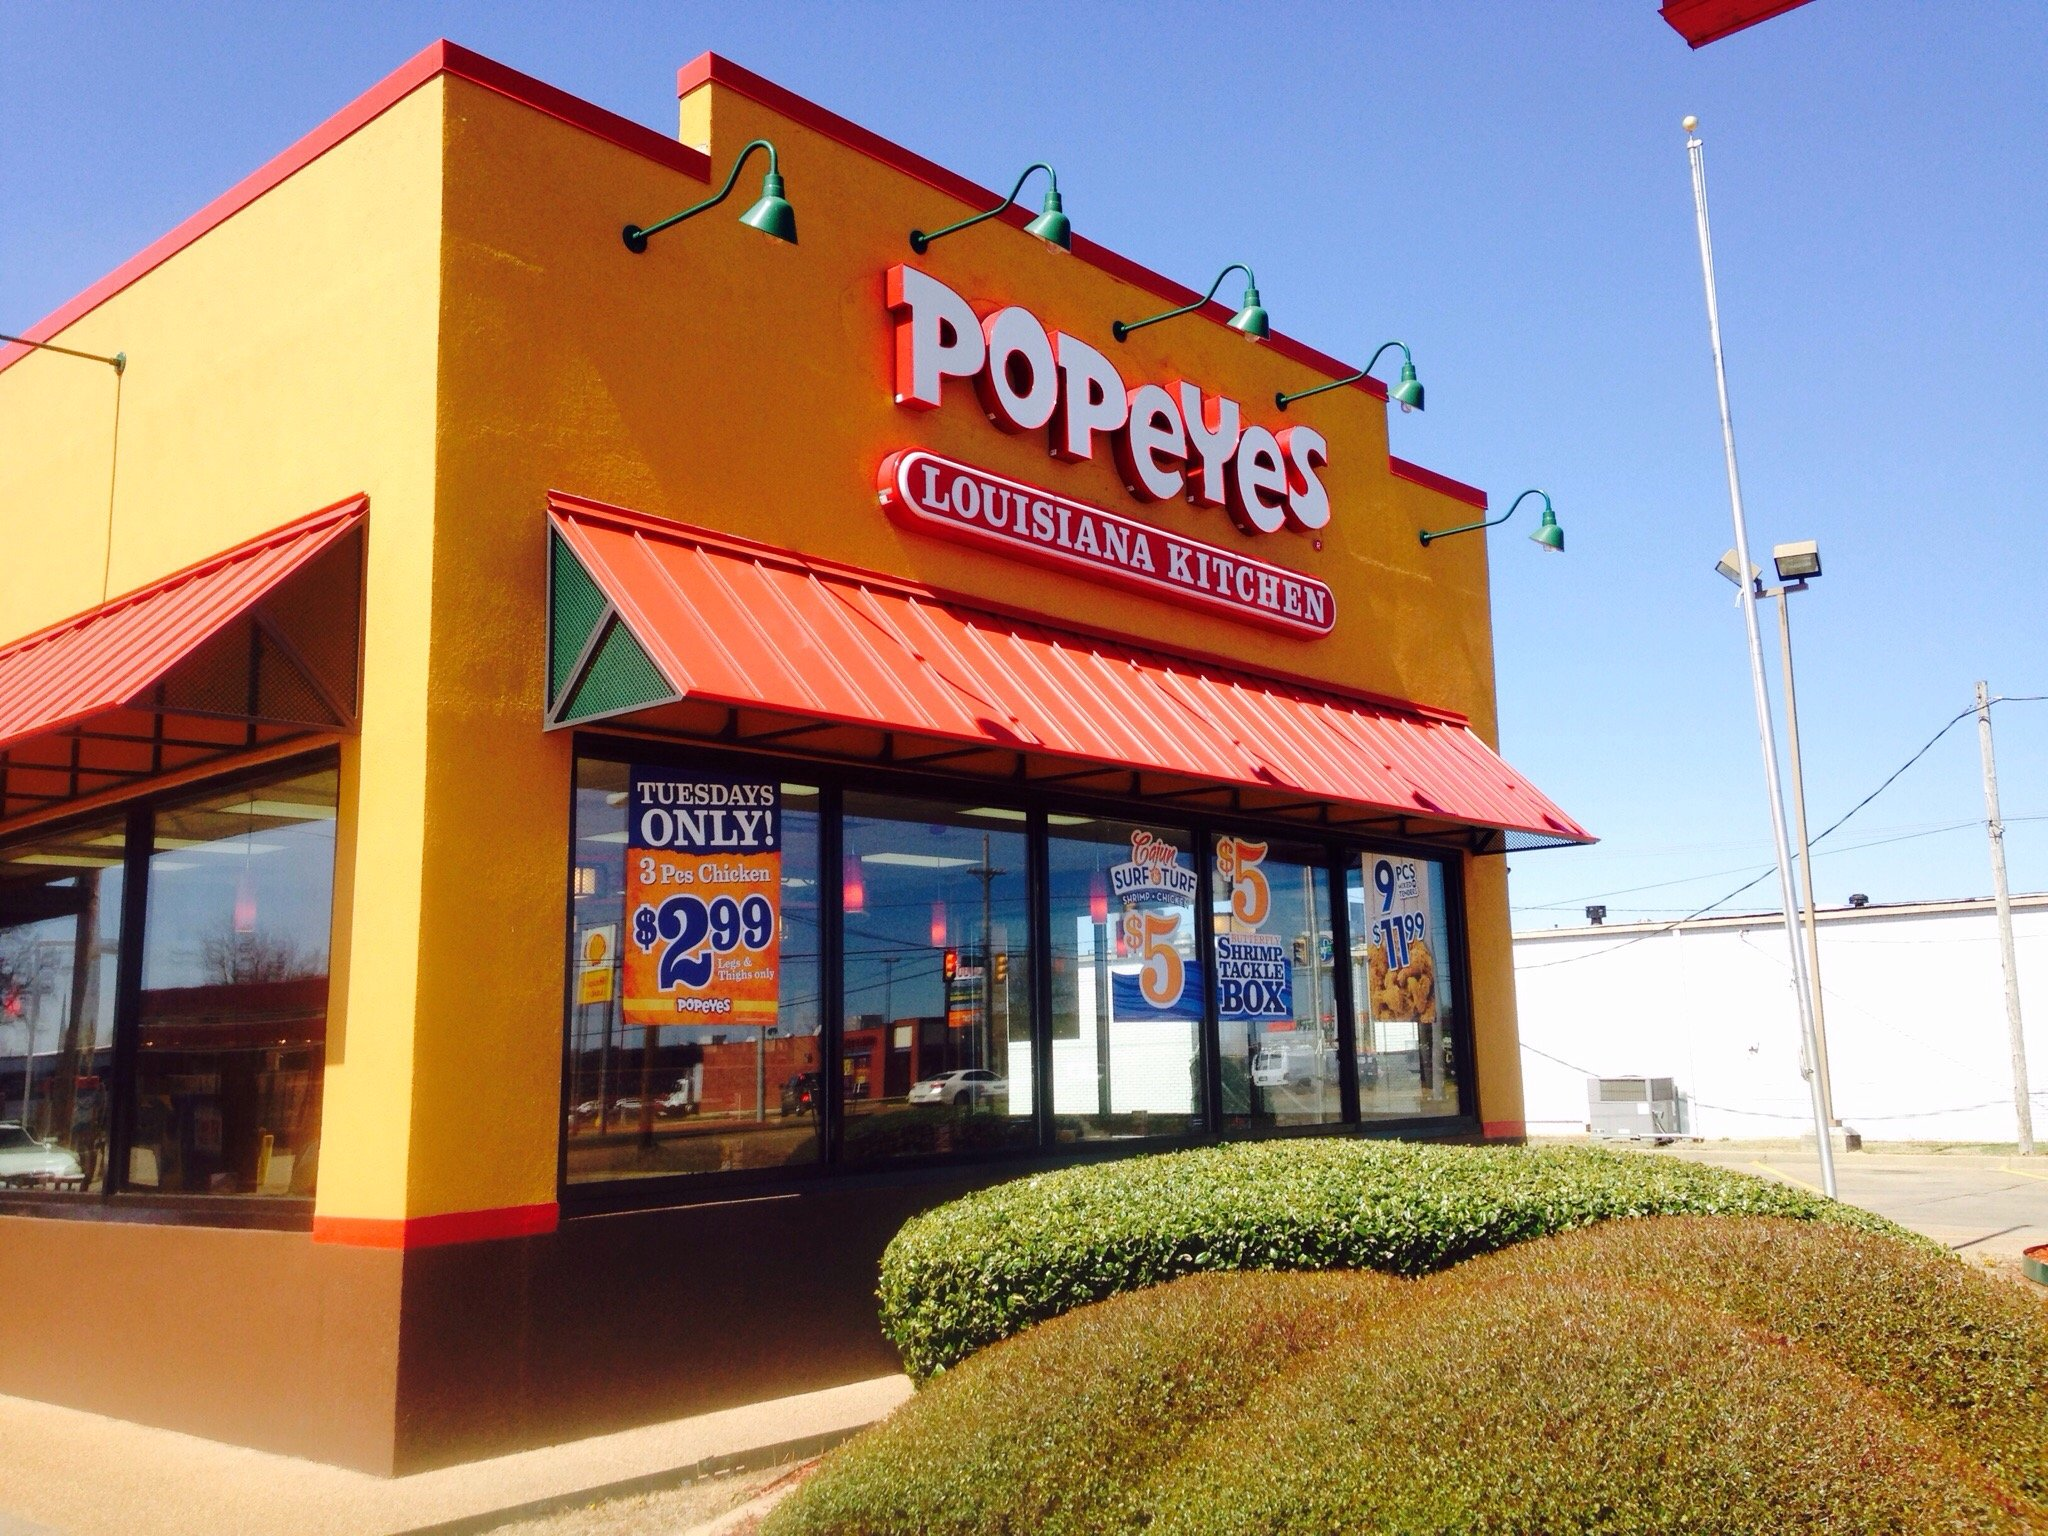 Popeyes Louisiana Kitchen popeyes louisiana kitchen, cleveland - restaurant reviews, phone